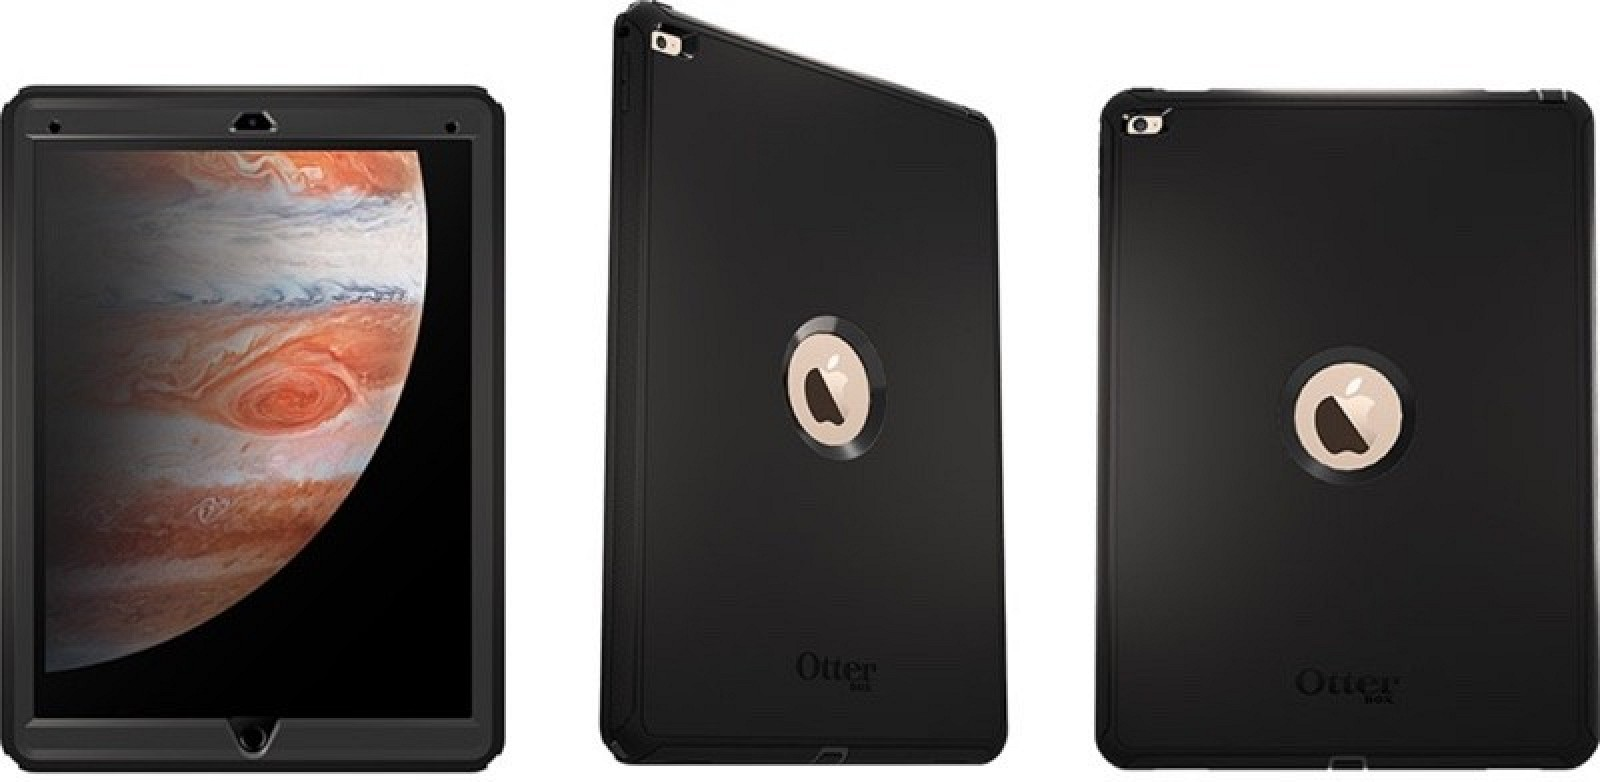 otterbox launches new cases for ipad pro  ipad air 2 and ipad mini 4